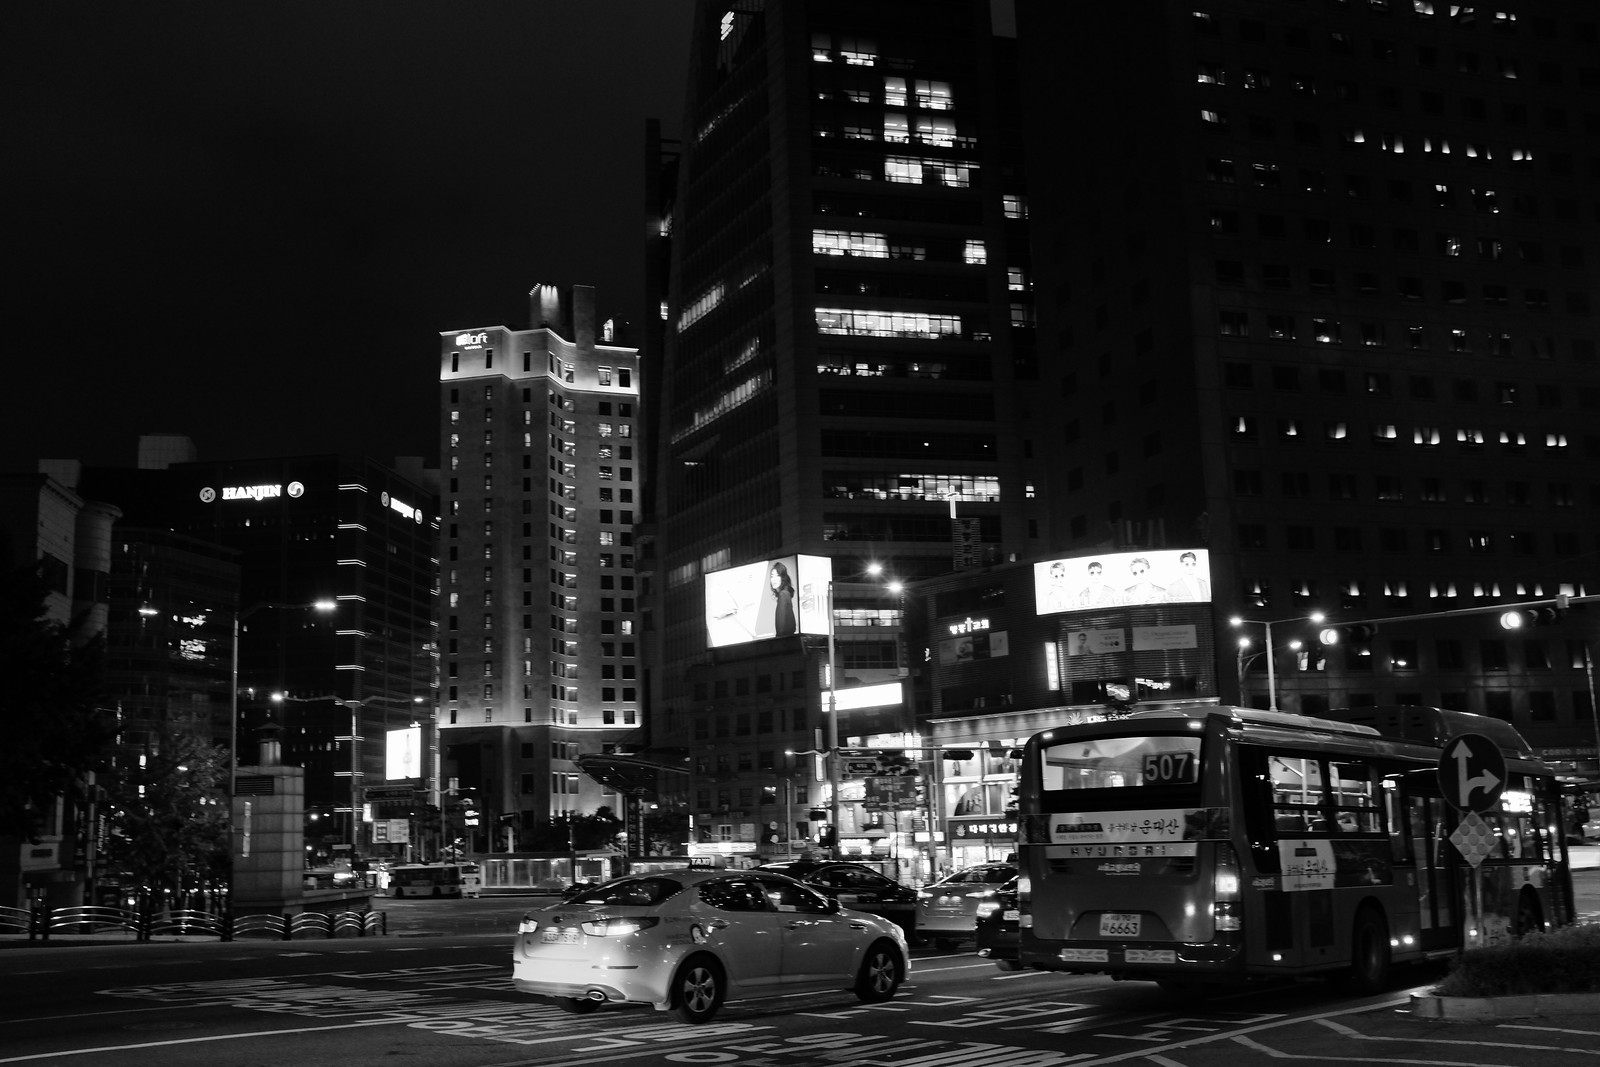 Seoul night photo 2017